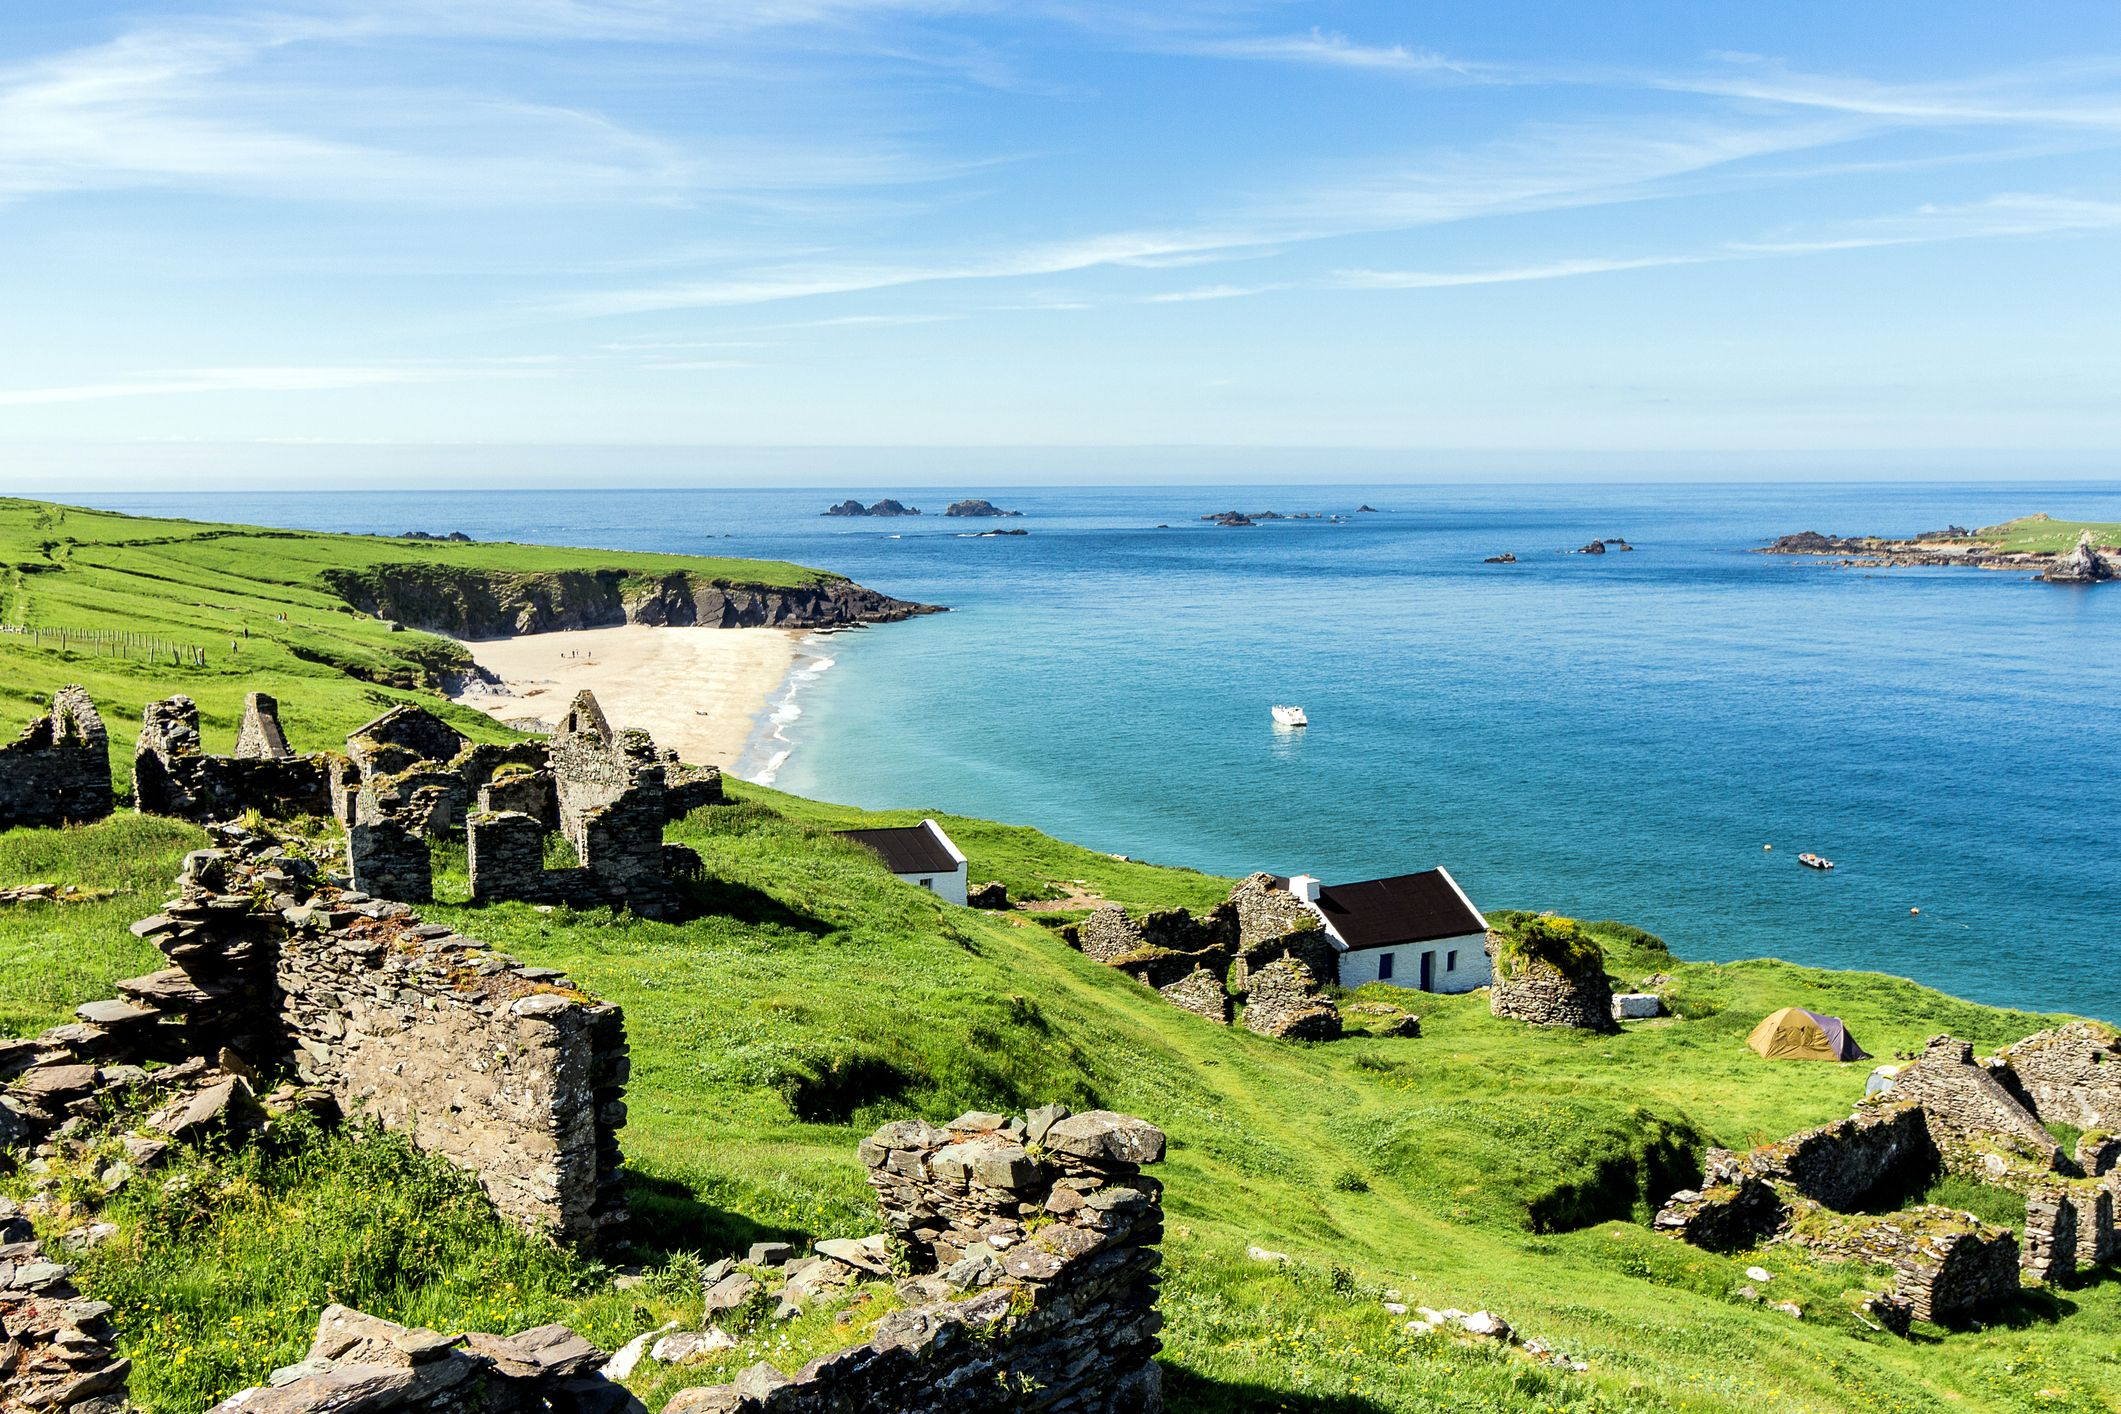 You can live for free on the remote Irish island of Great Blasket for 7 months